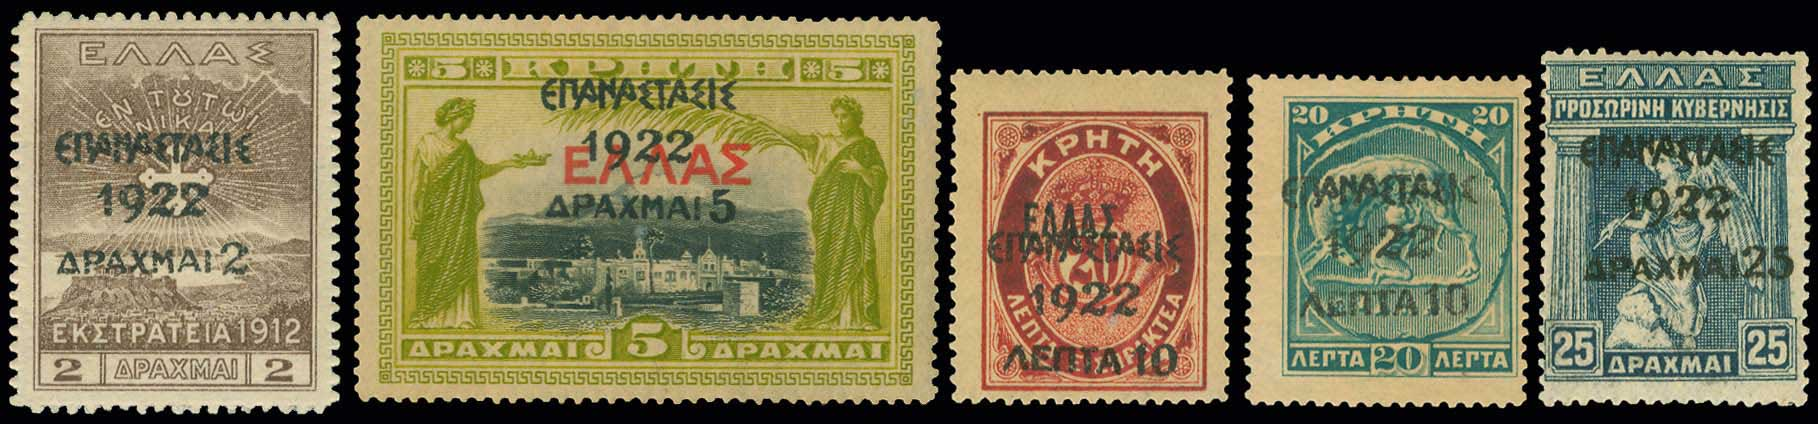 Lot 414 - -  1911 - 1923 επαναστασισ 1922  ovpt. -  A. Karamitsos Public Auction 645 General Stamp Sale